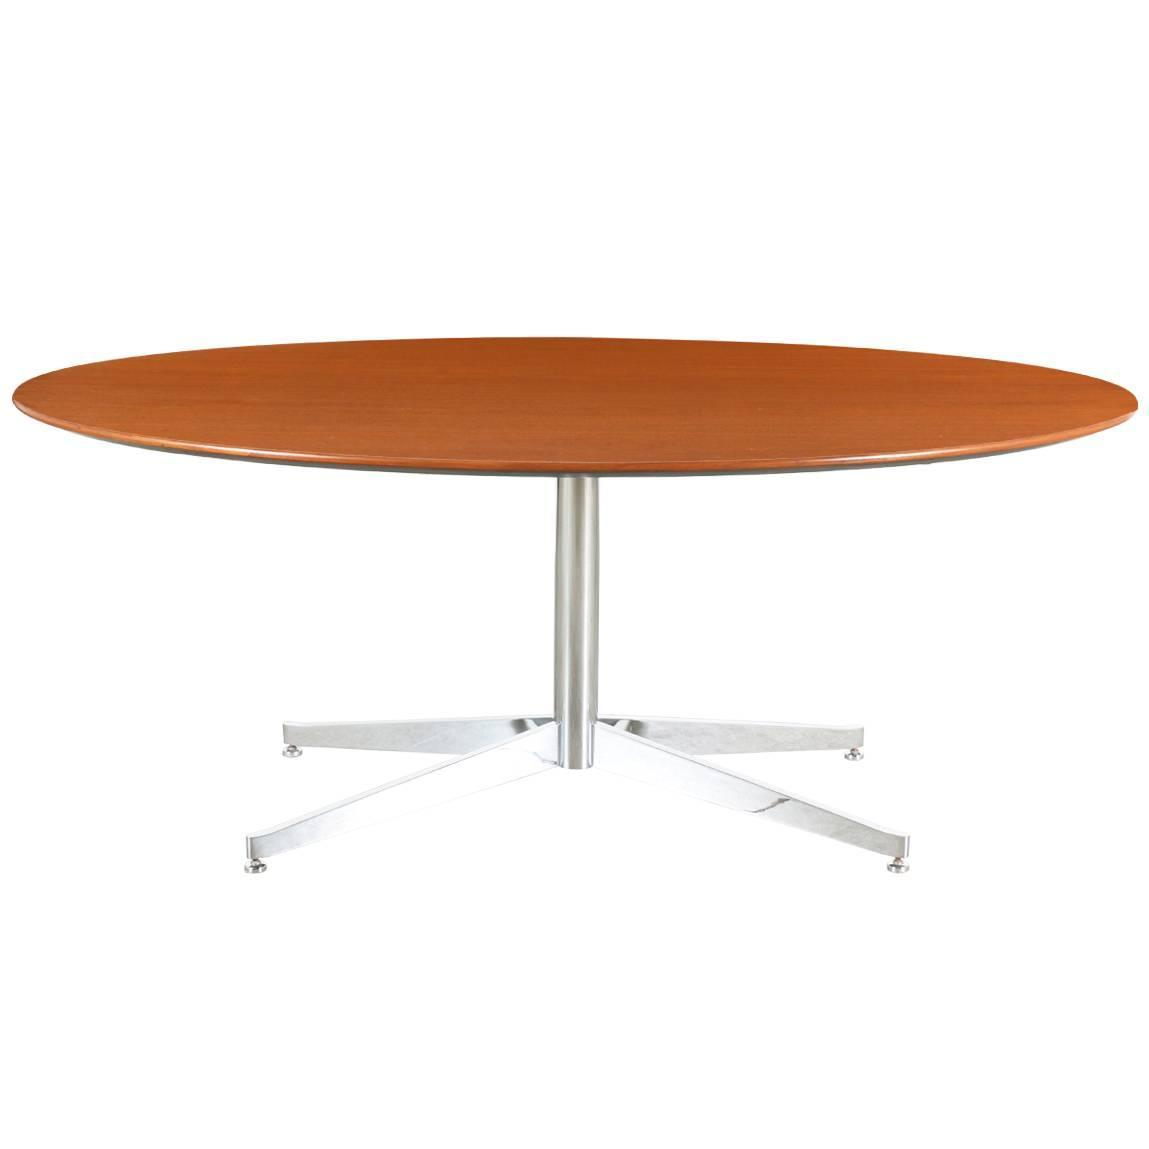 florence knoll oval walnut dining table with chrome base at 1stdibs. Black Bedroom Furniture Sets. Home Design Ideas